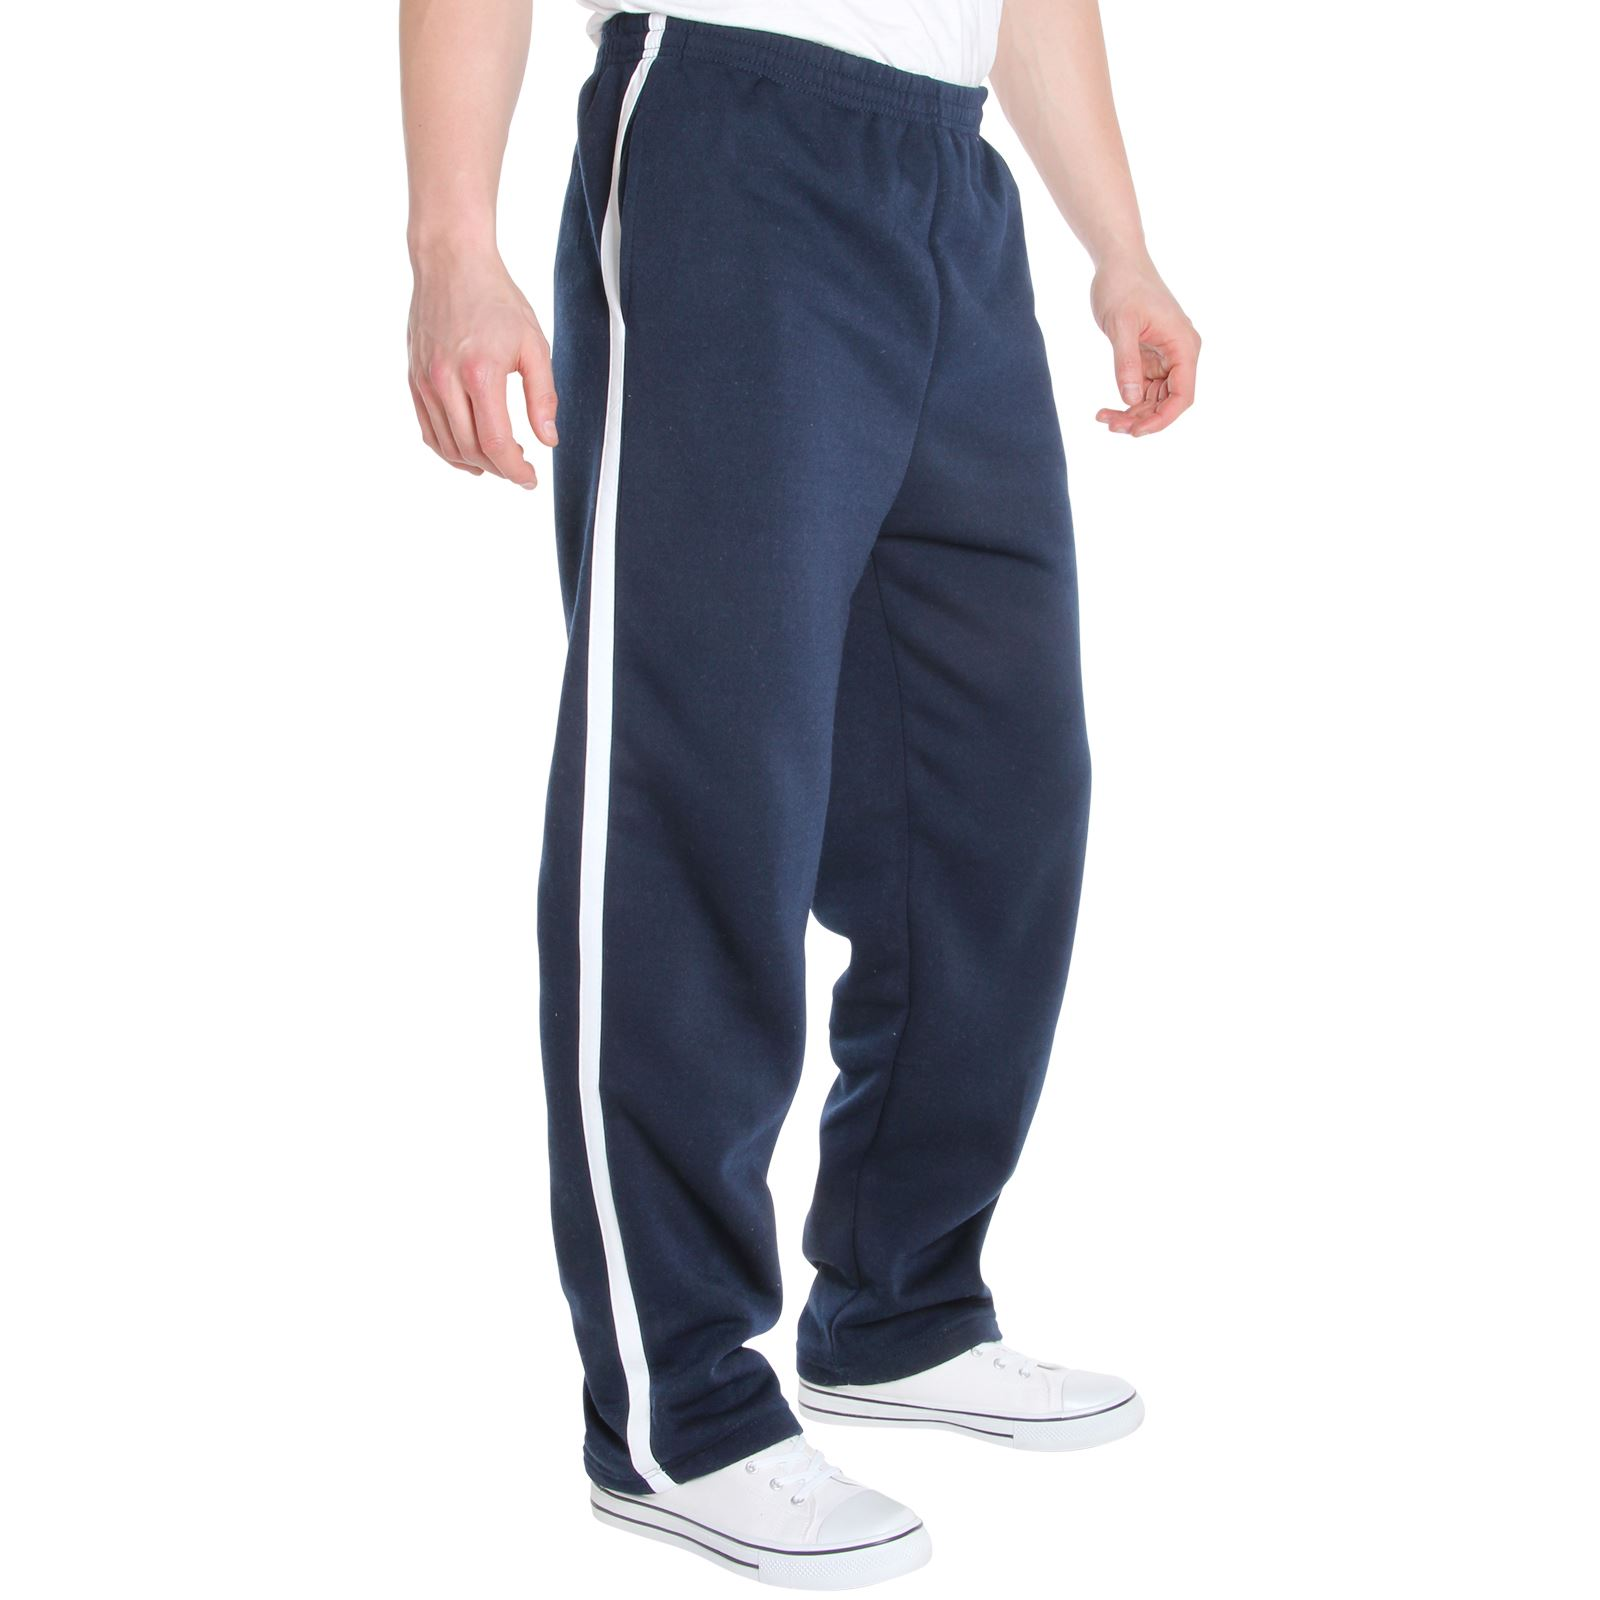 Homme pantalon rayure survetement bas jogging d contract sport gym ebay - Bas jogging homme ...